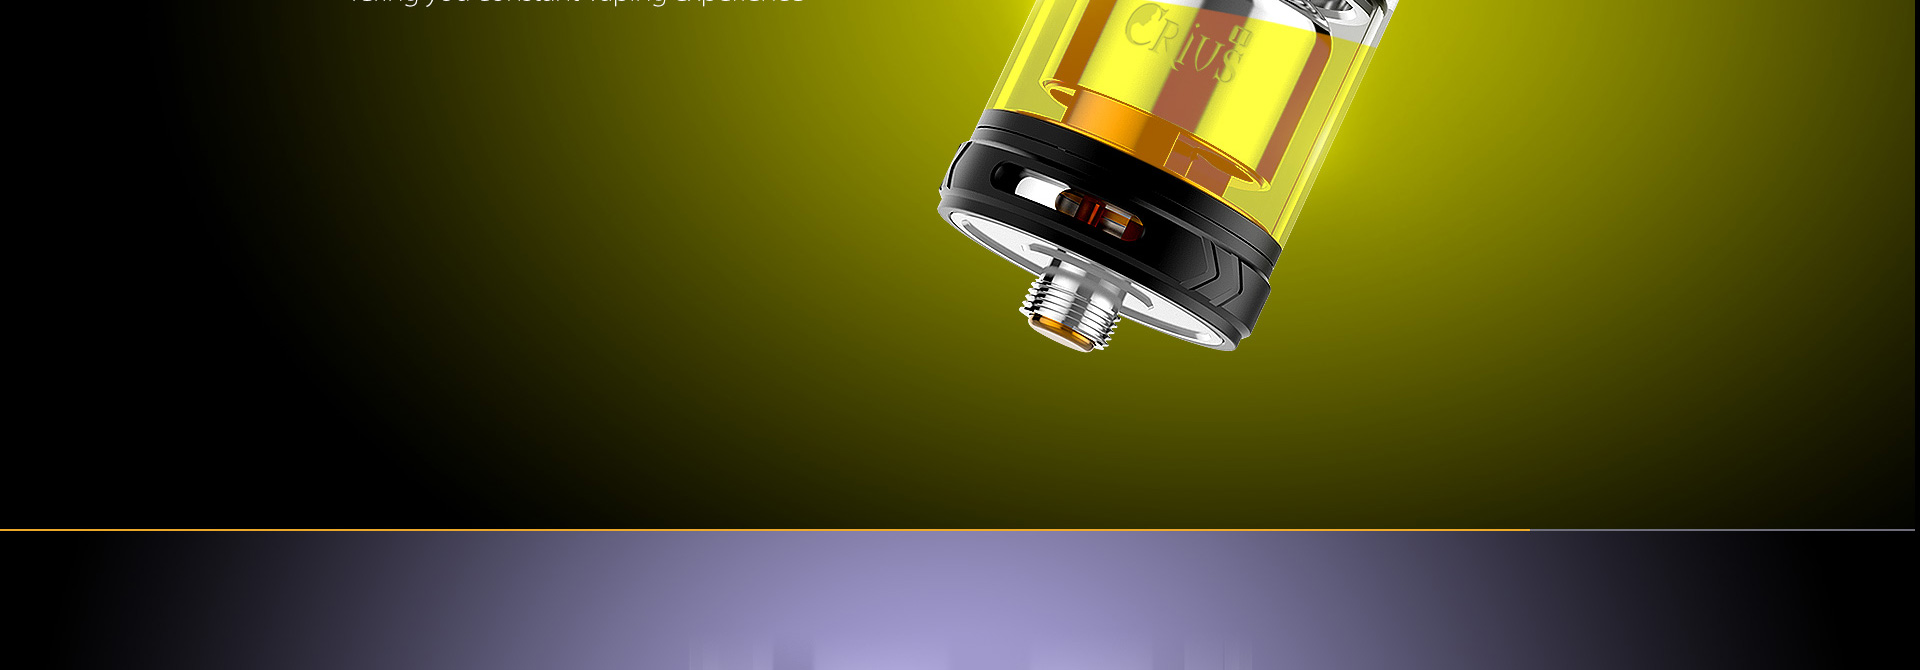 Crius 2 RTA by OBS vapexperts 9